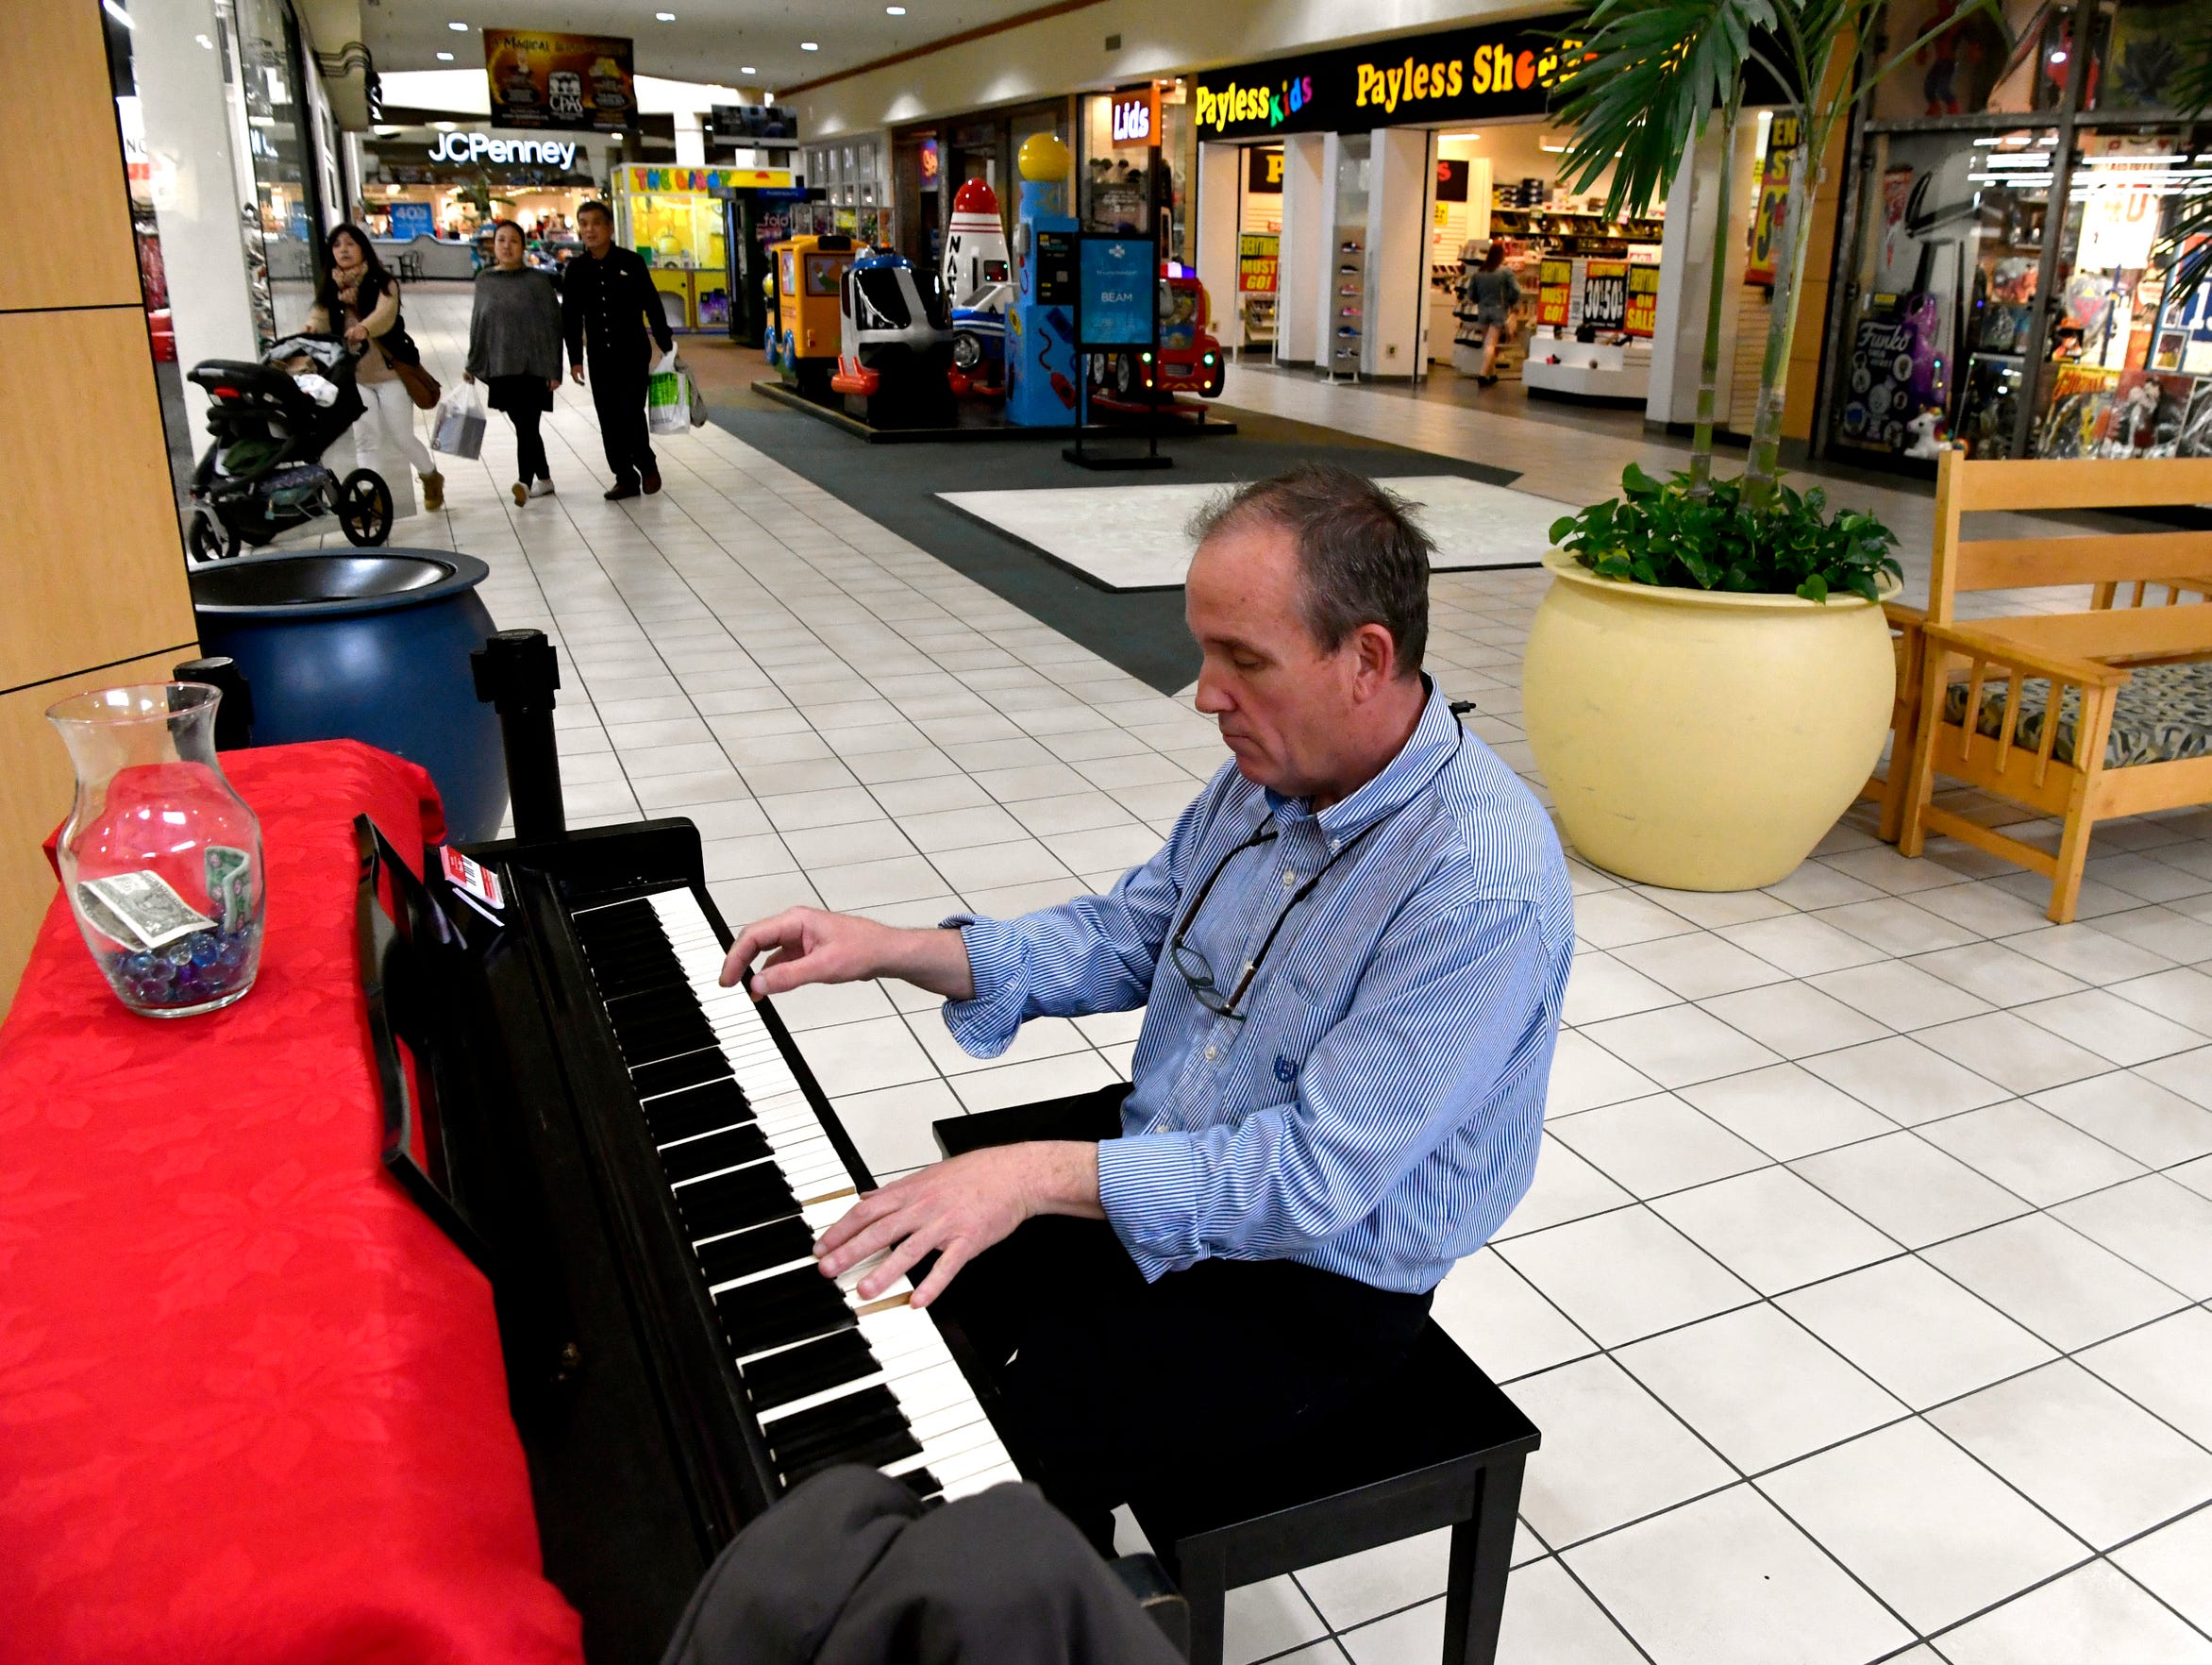 Brad White plays the piano March 7 in front of the Women's Dillard's store at the Mall of Abilene.